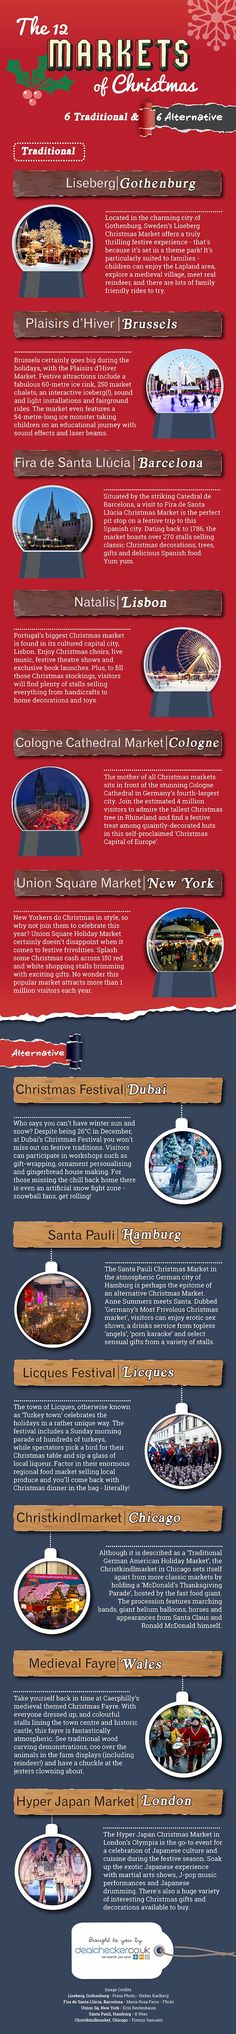 The 12 Markets of Christmas #infographic #Christmas #Travel